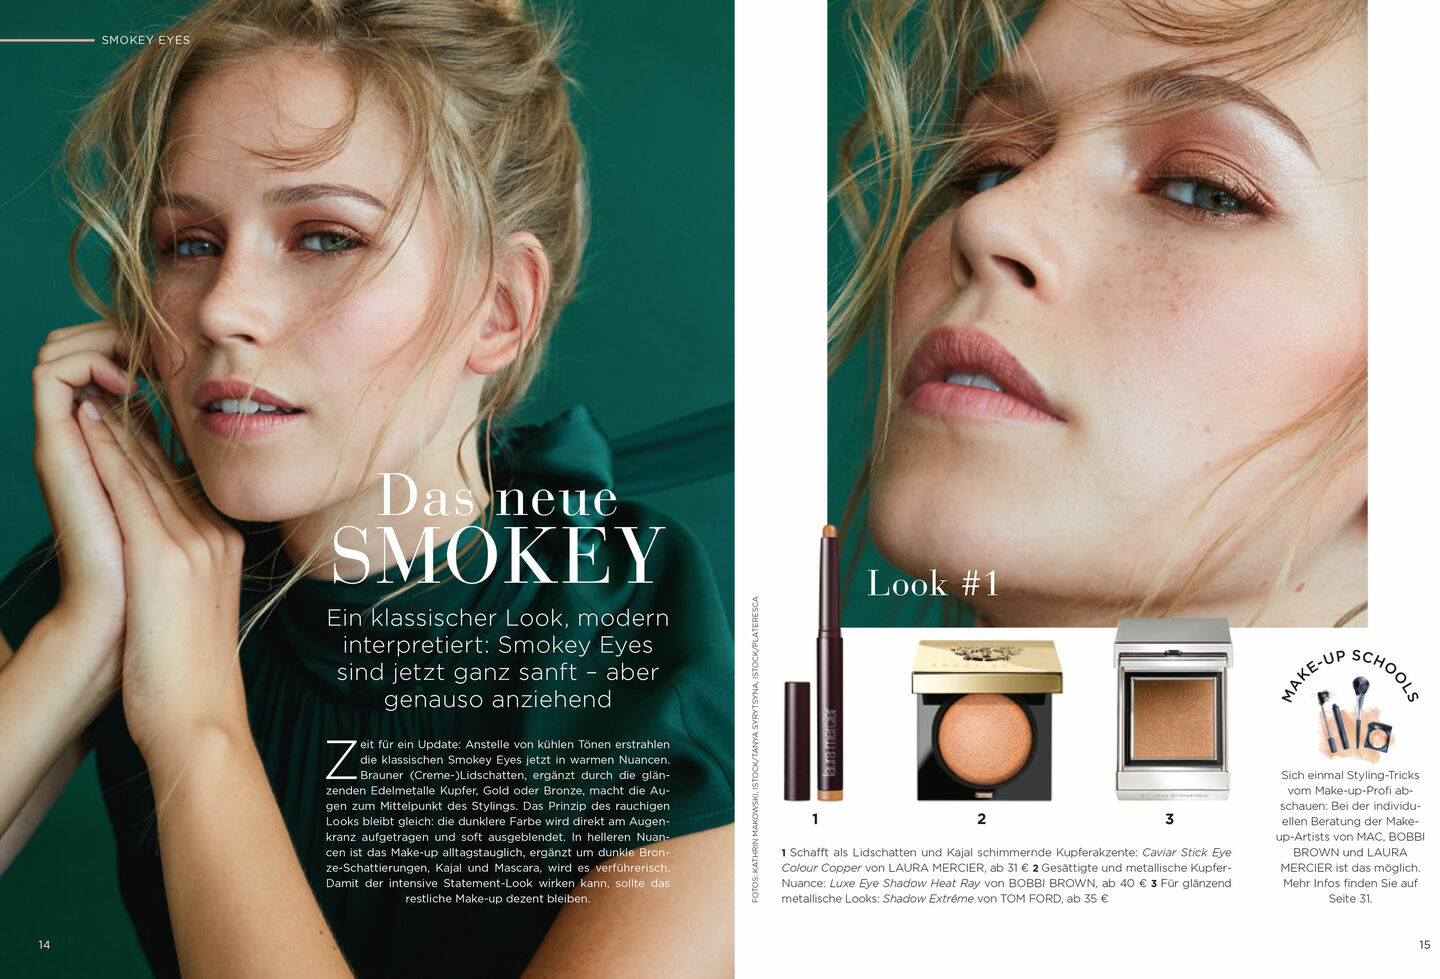 Double page from the LUDWIG BECK beauty magazine Autumn/Winter 2019 with products for smokey eyes